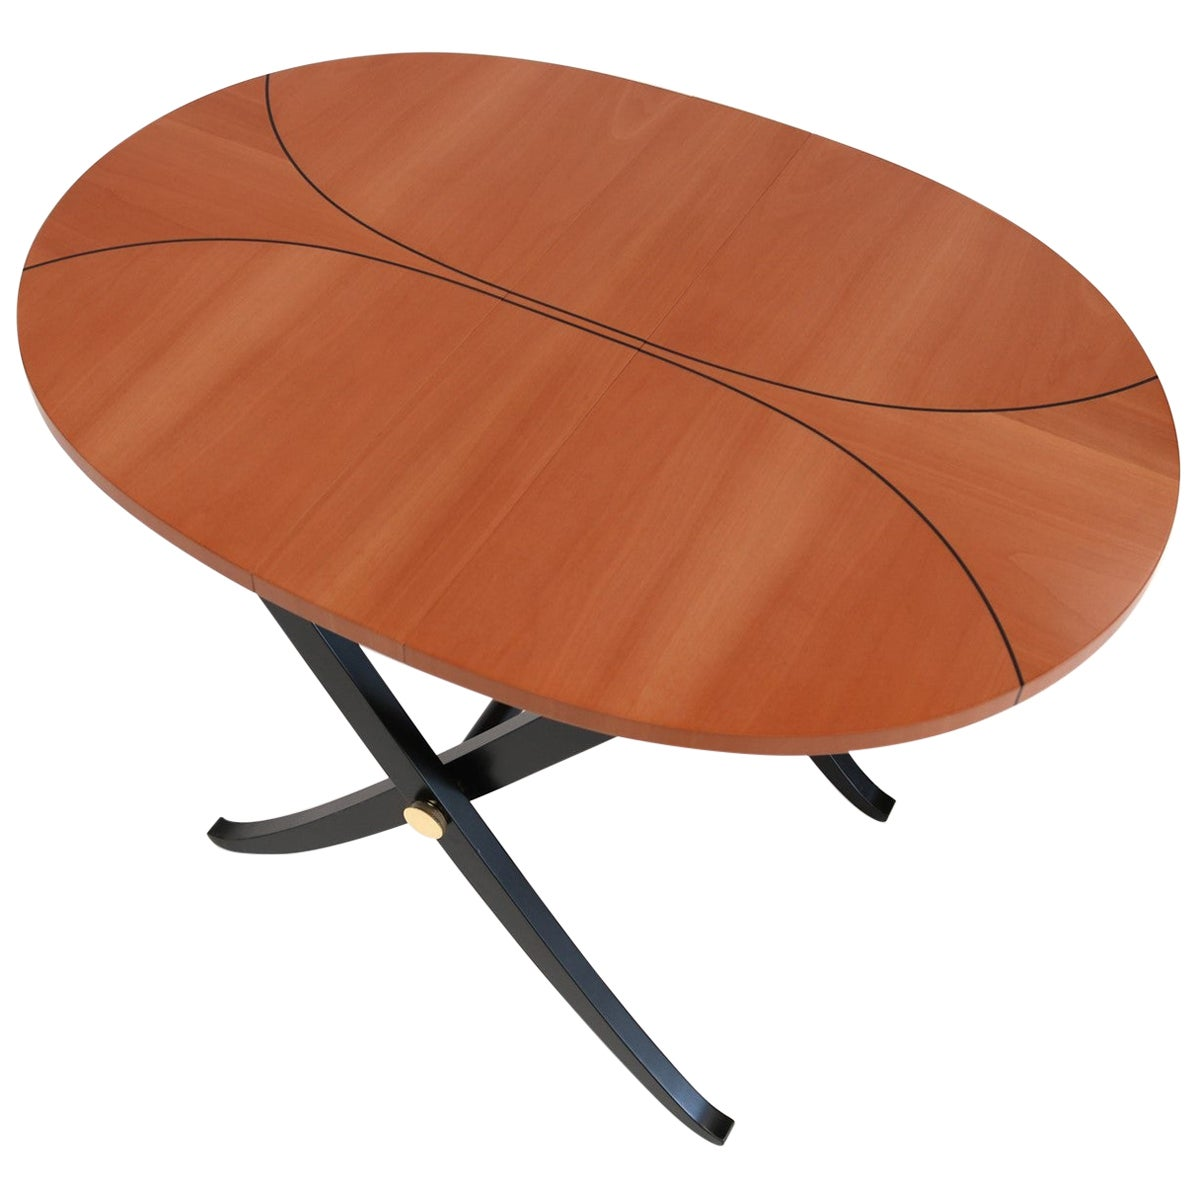 Ariel Ebony Inlaid oval foldable coffee contemporary Table by Giordano Viganò